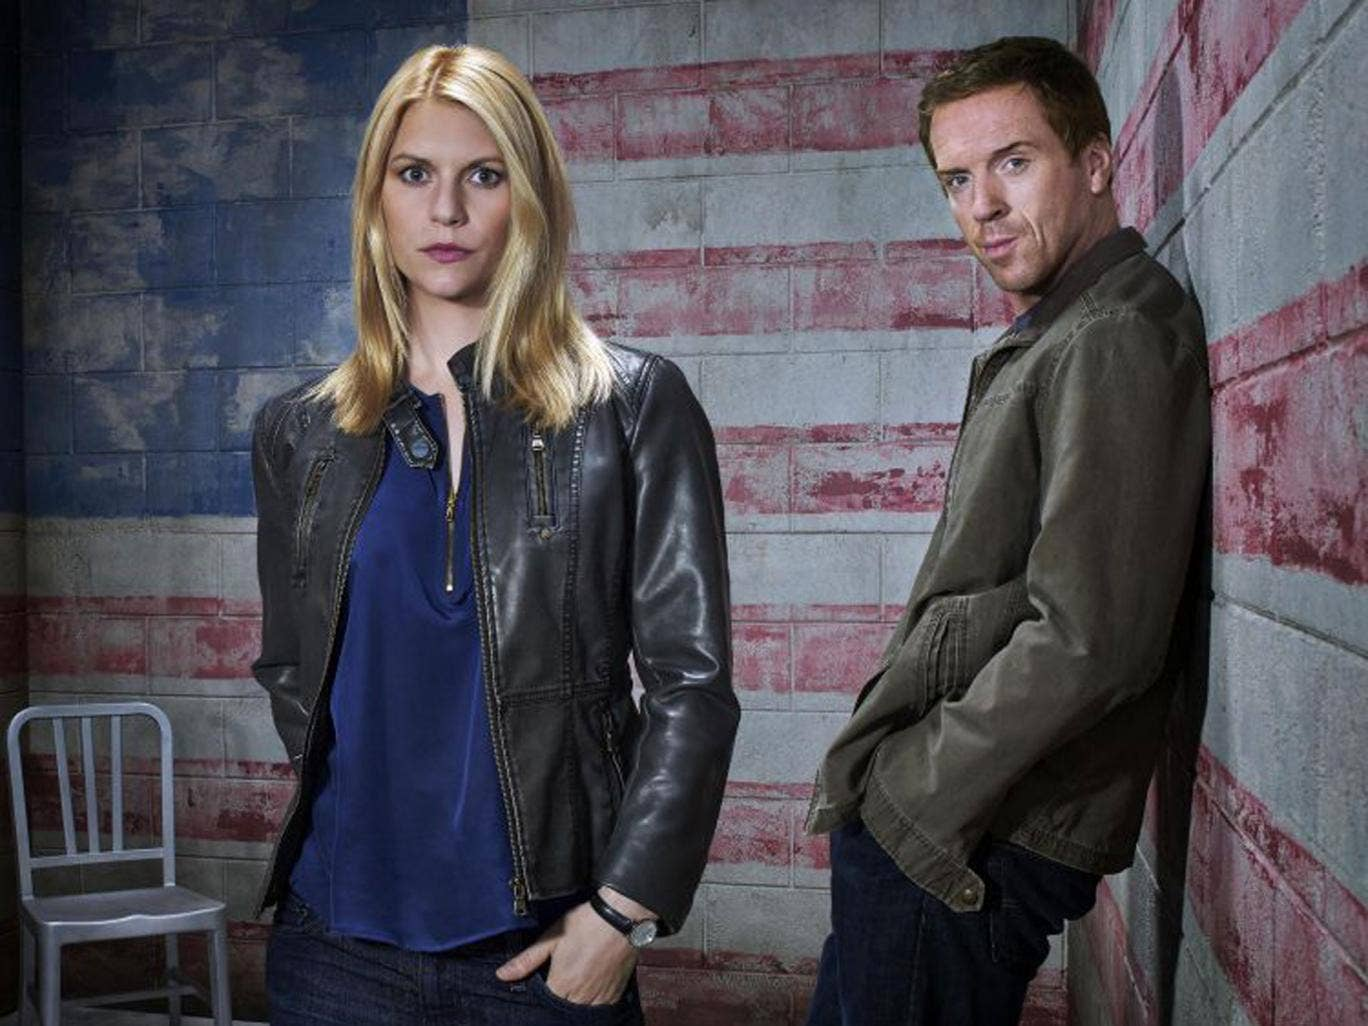 Claire Danes as Carrie Mathison and Damian Lewis as Nicholas Brody return for the third season of 'Homeland'